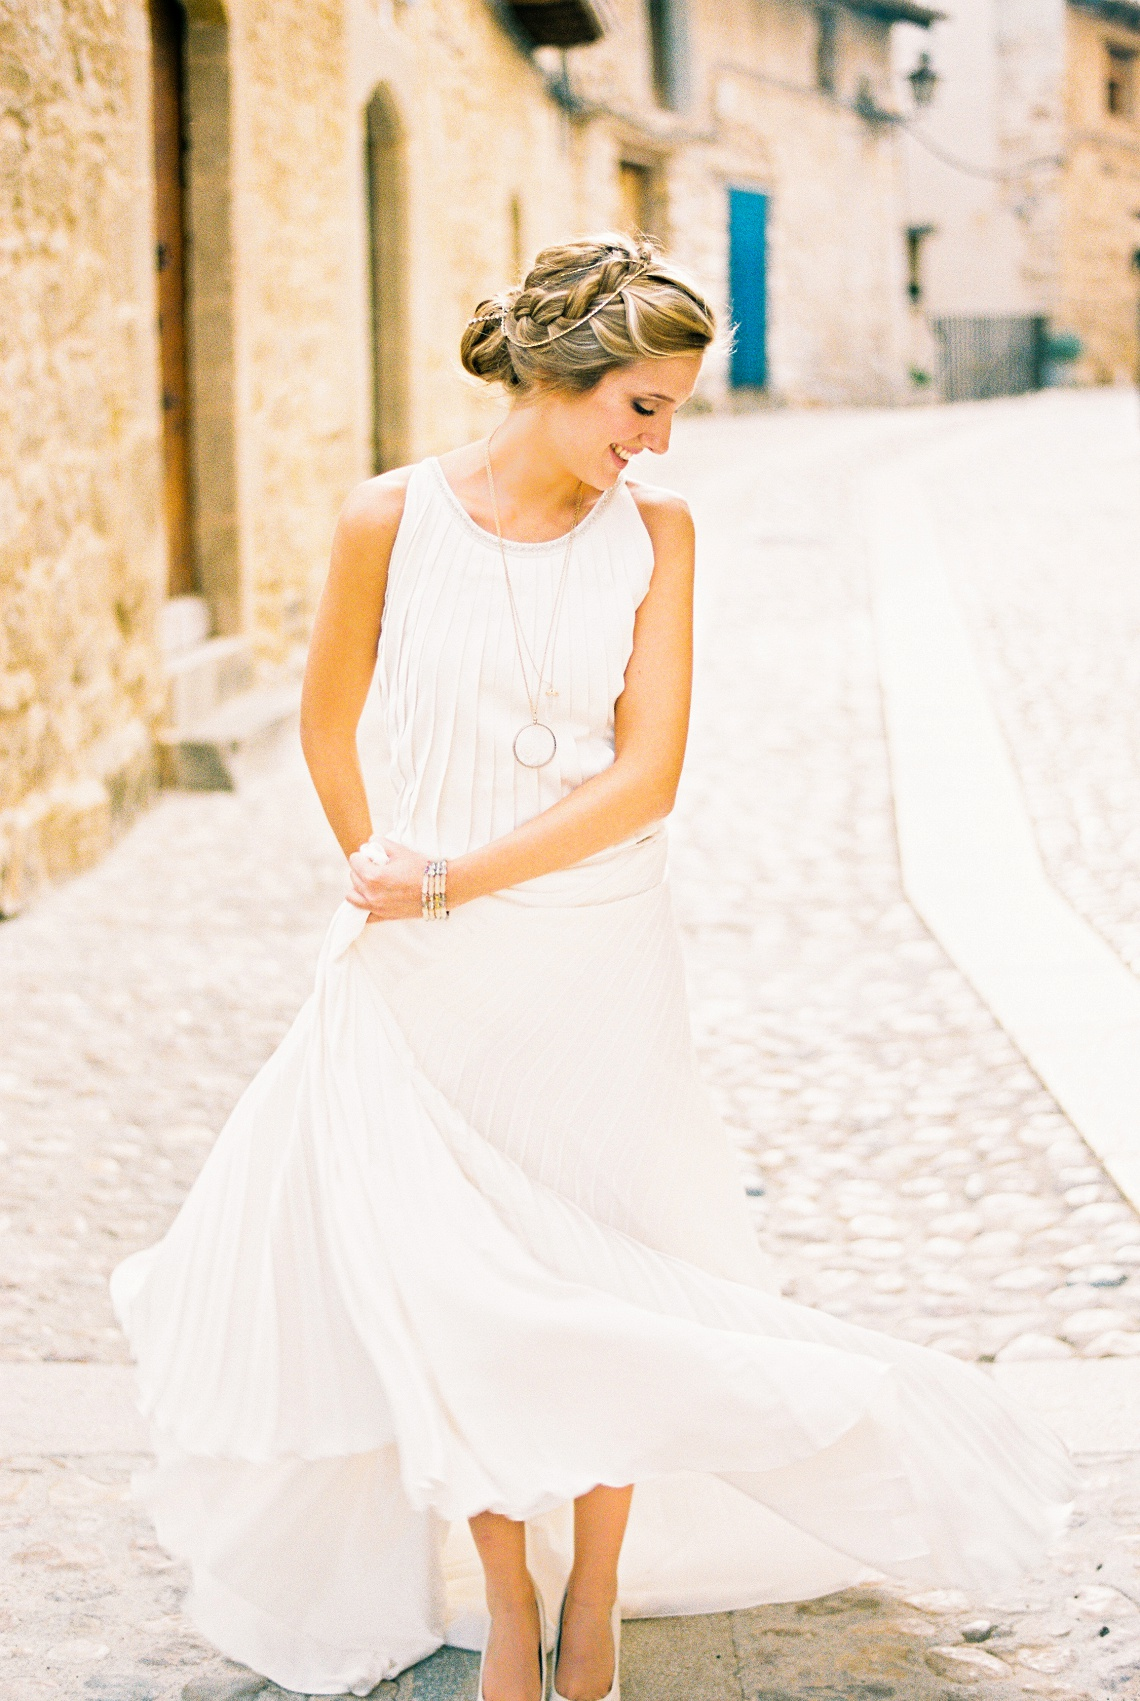 bloved-wedding-blog-comfortable-bridal-style (8)